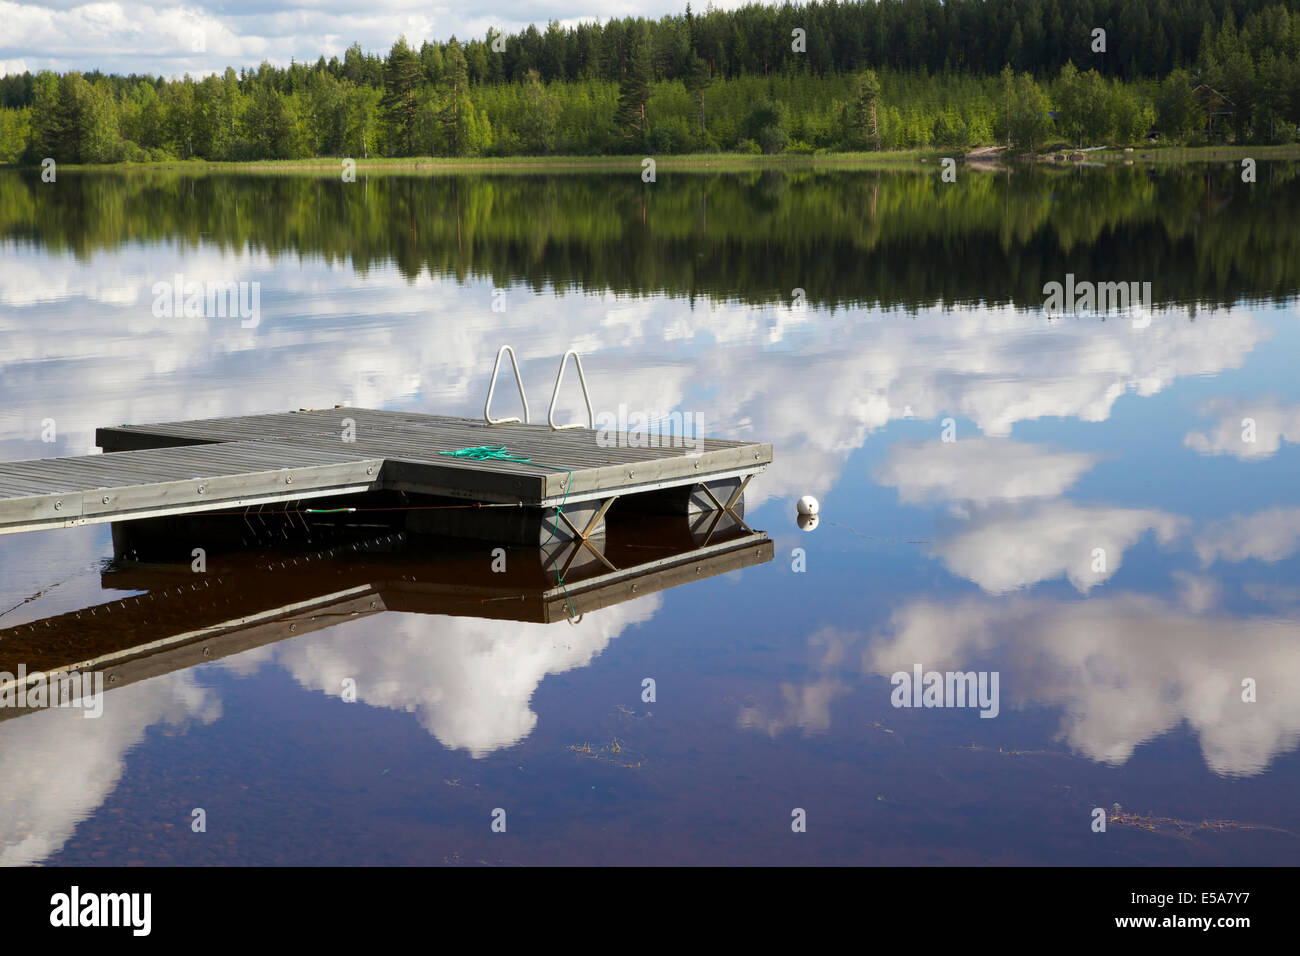 Lake scenery with a pier in summer in Finland - Stock Image